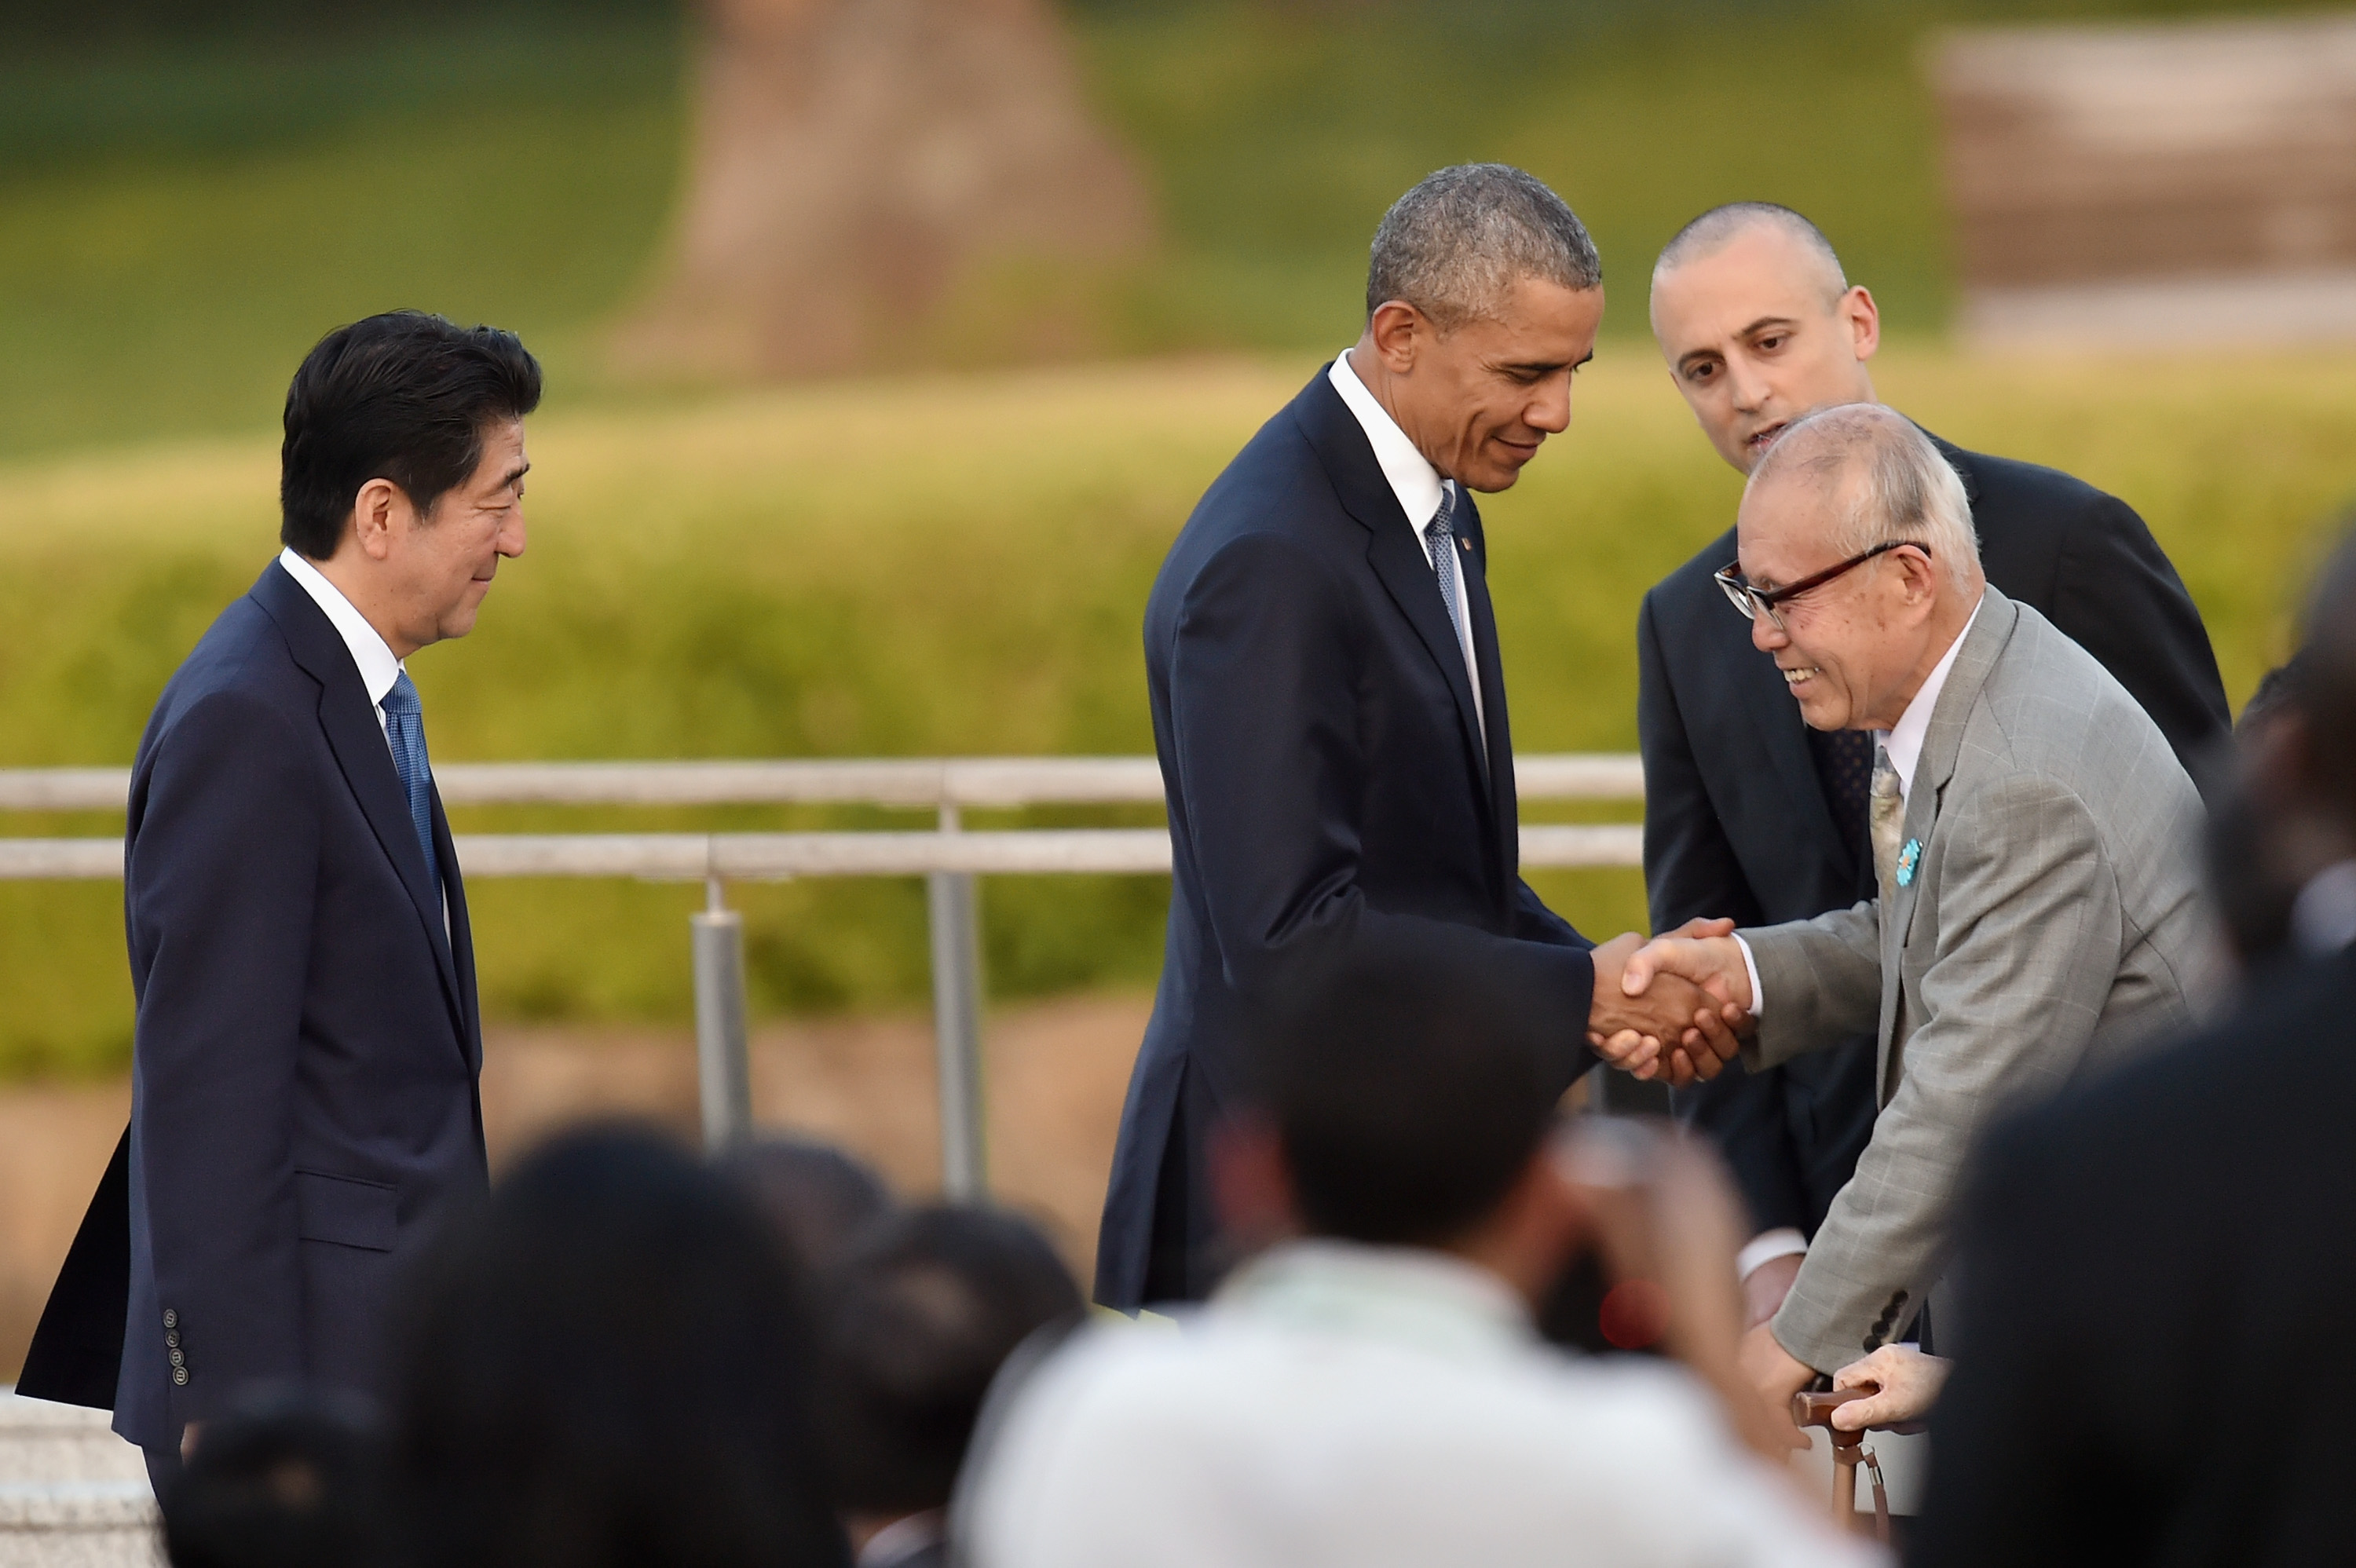 Four things to know about President Obama's visit to Hiroshima